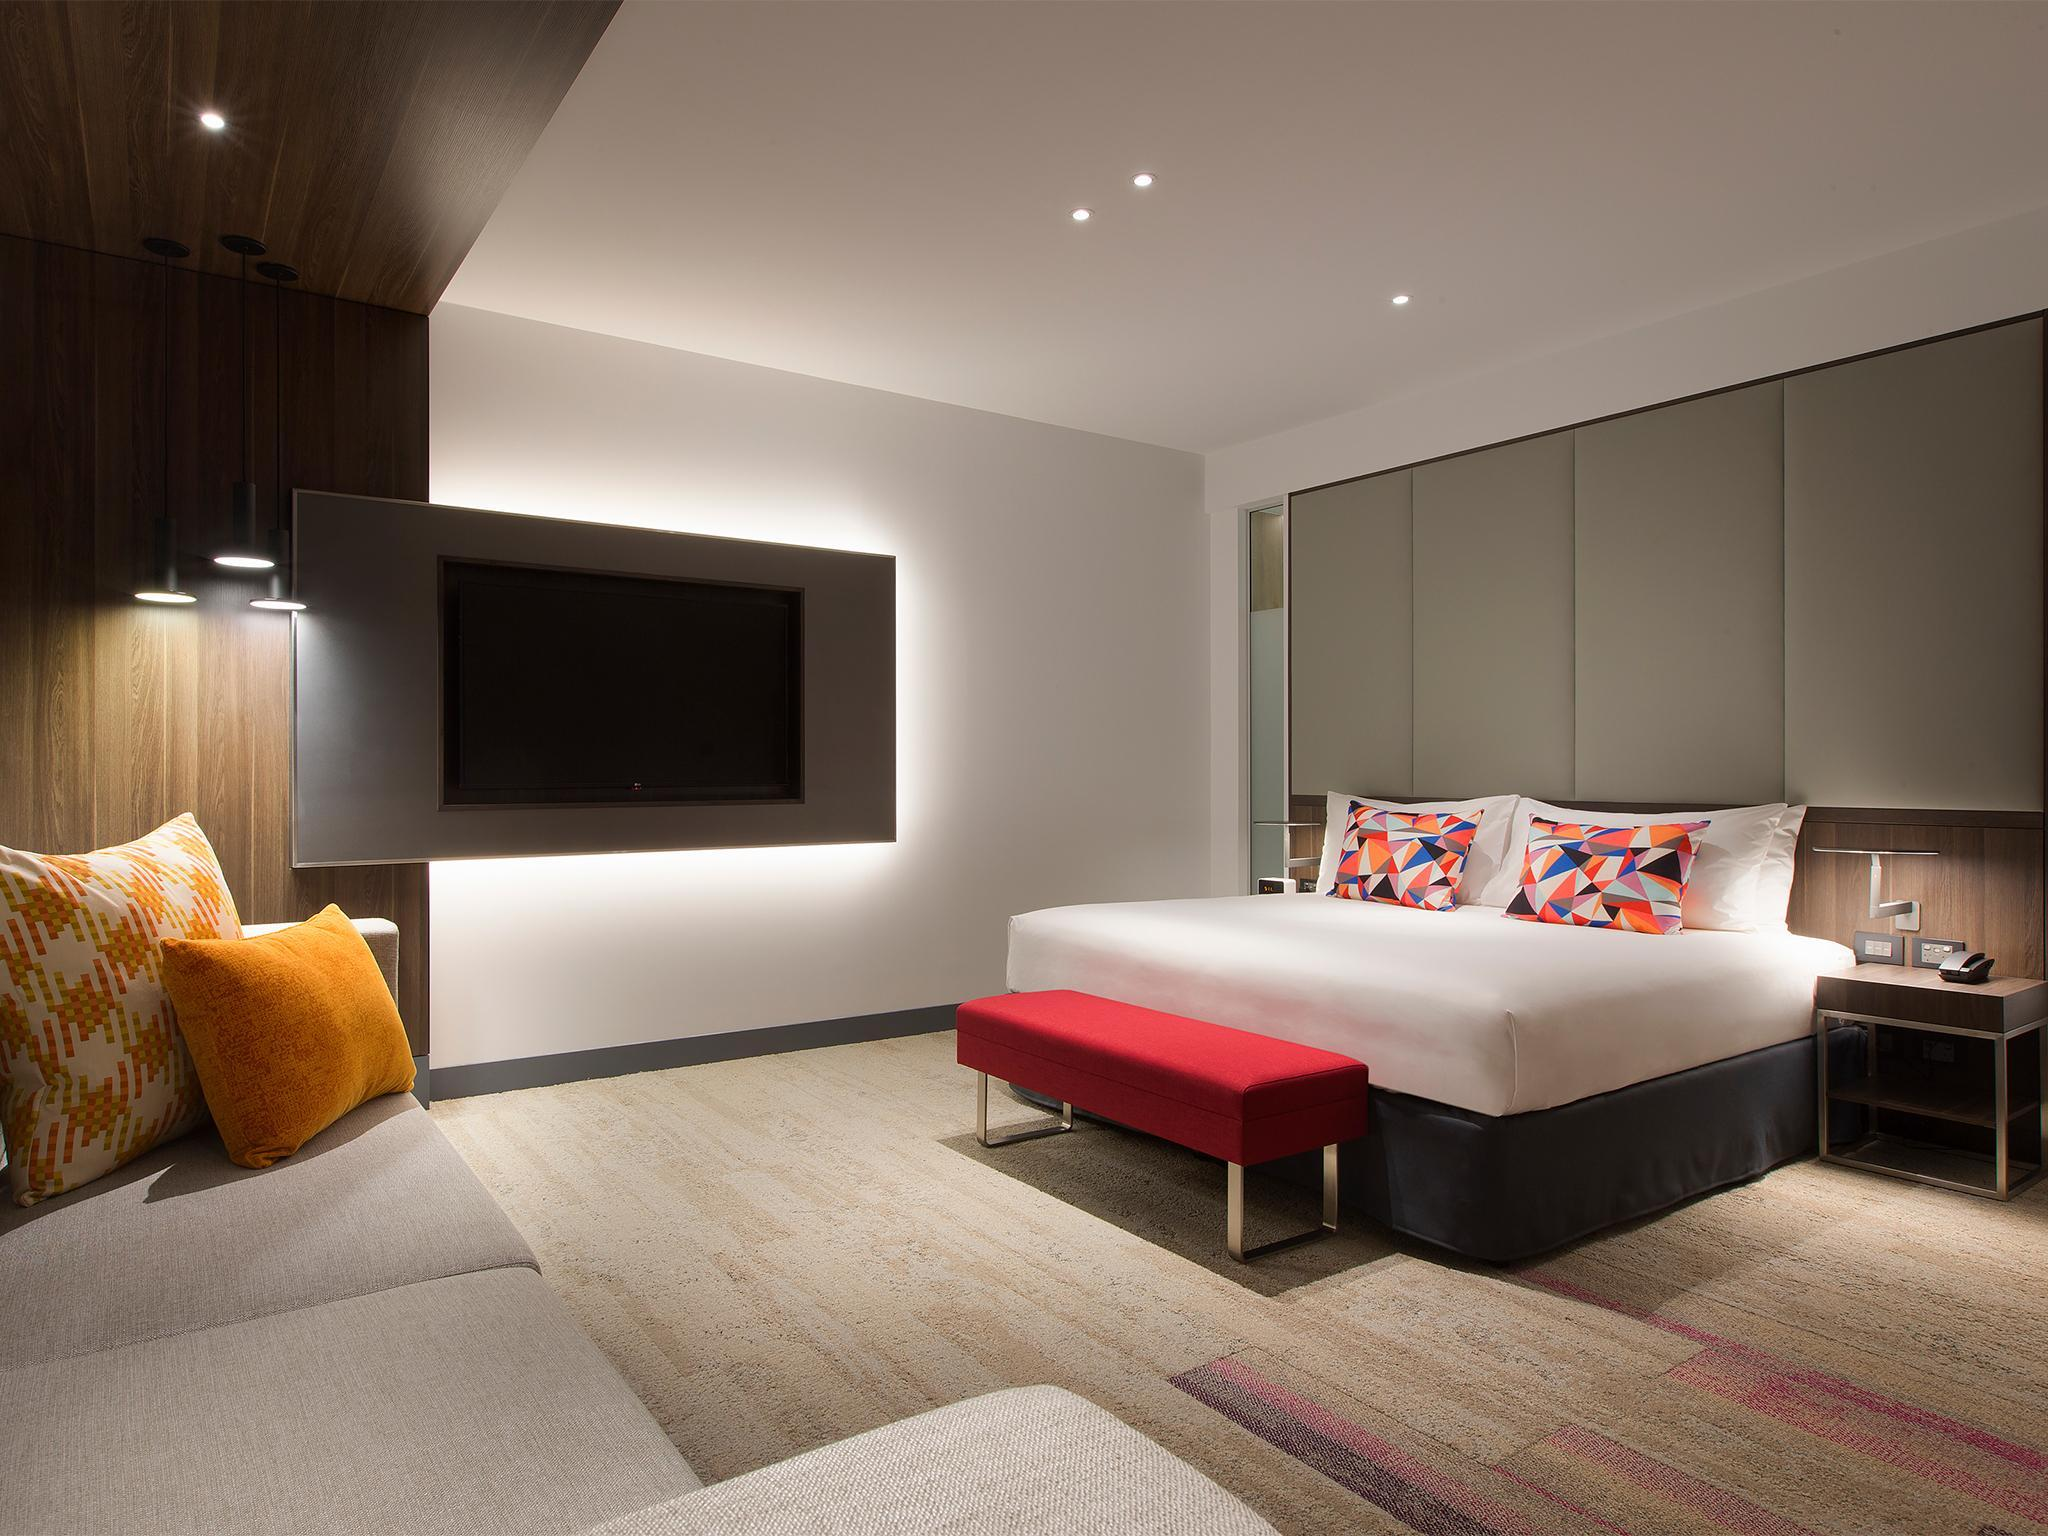 Aloft大客房 (Aloft Oversized Room)